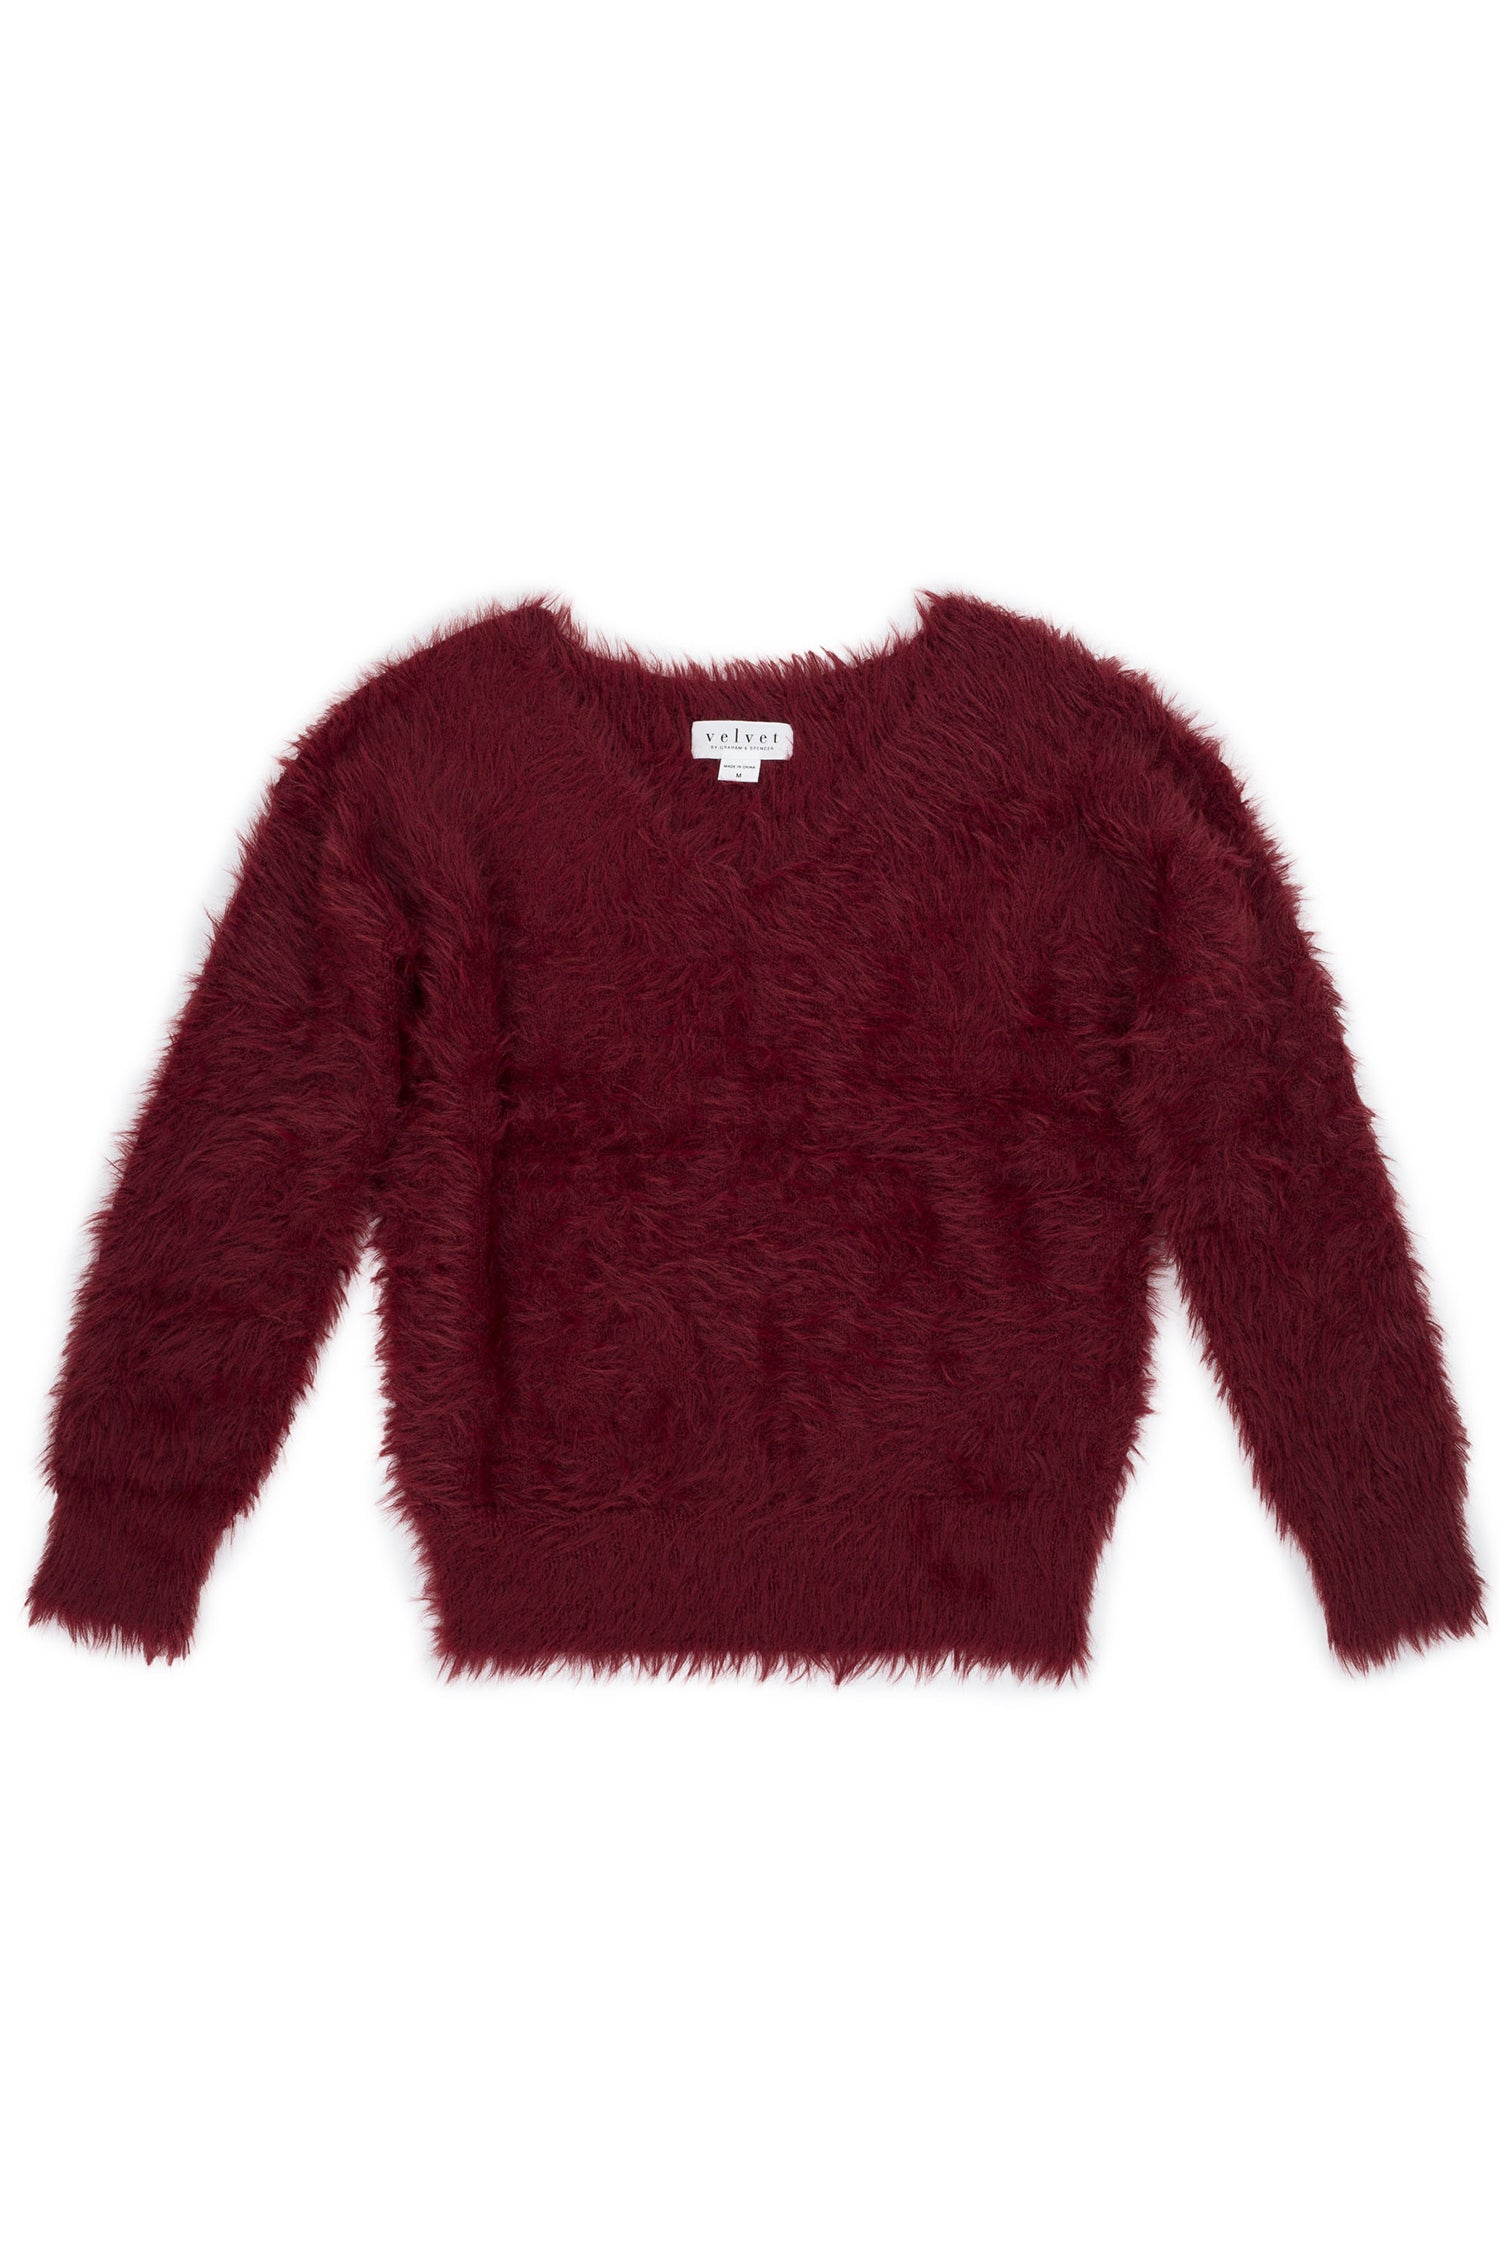 RILEY FEATHERED YARN V-NECK SWEATER